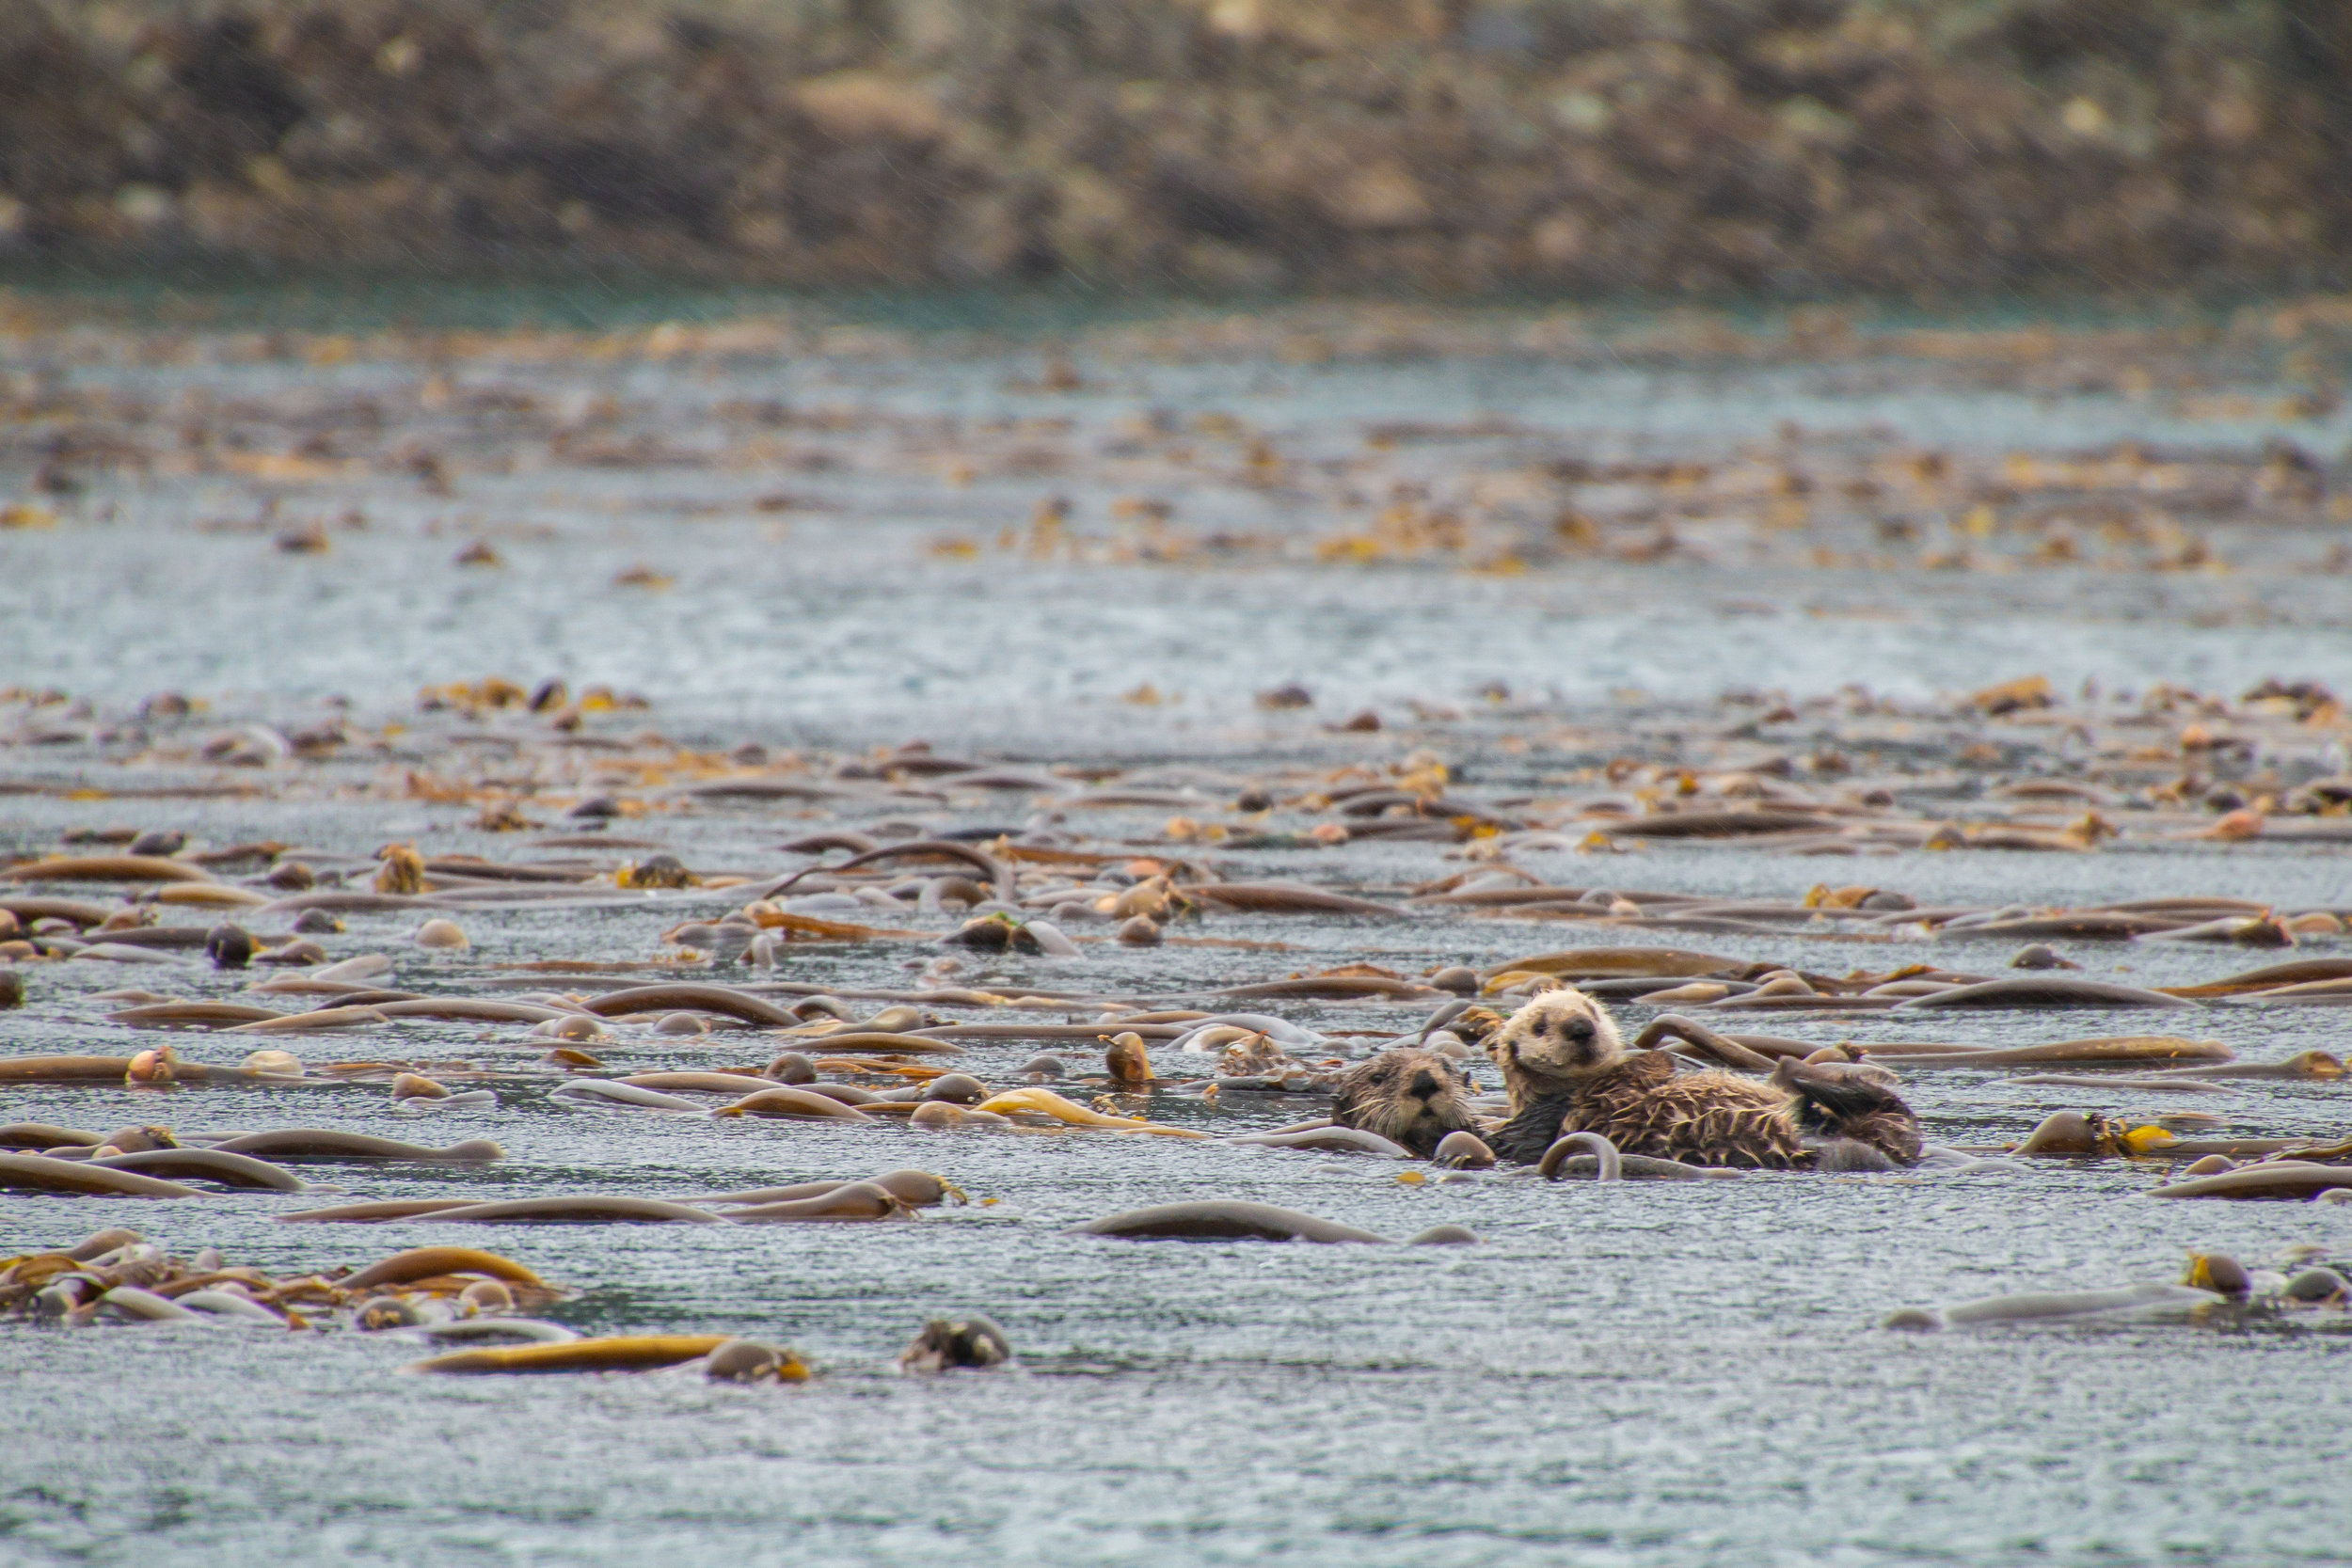 Sea Otter mom and pup floating among a forest of kelp, Inian Islands, Southeast Alaska.